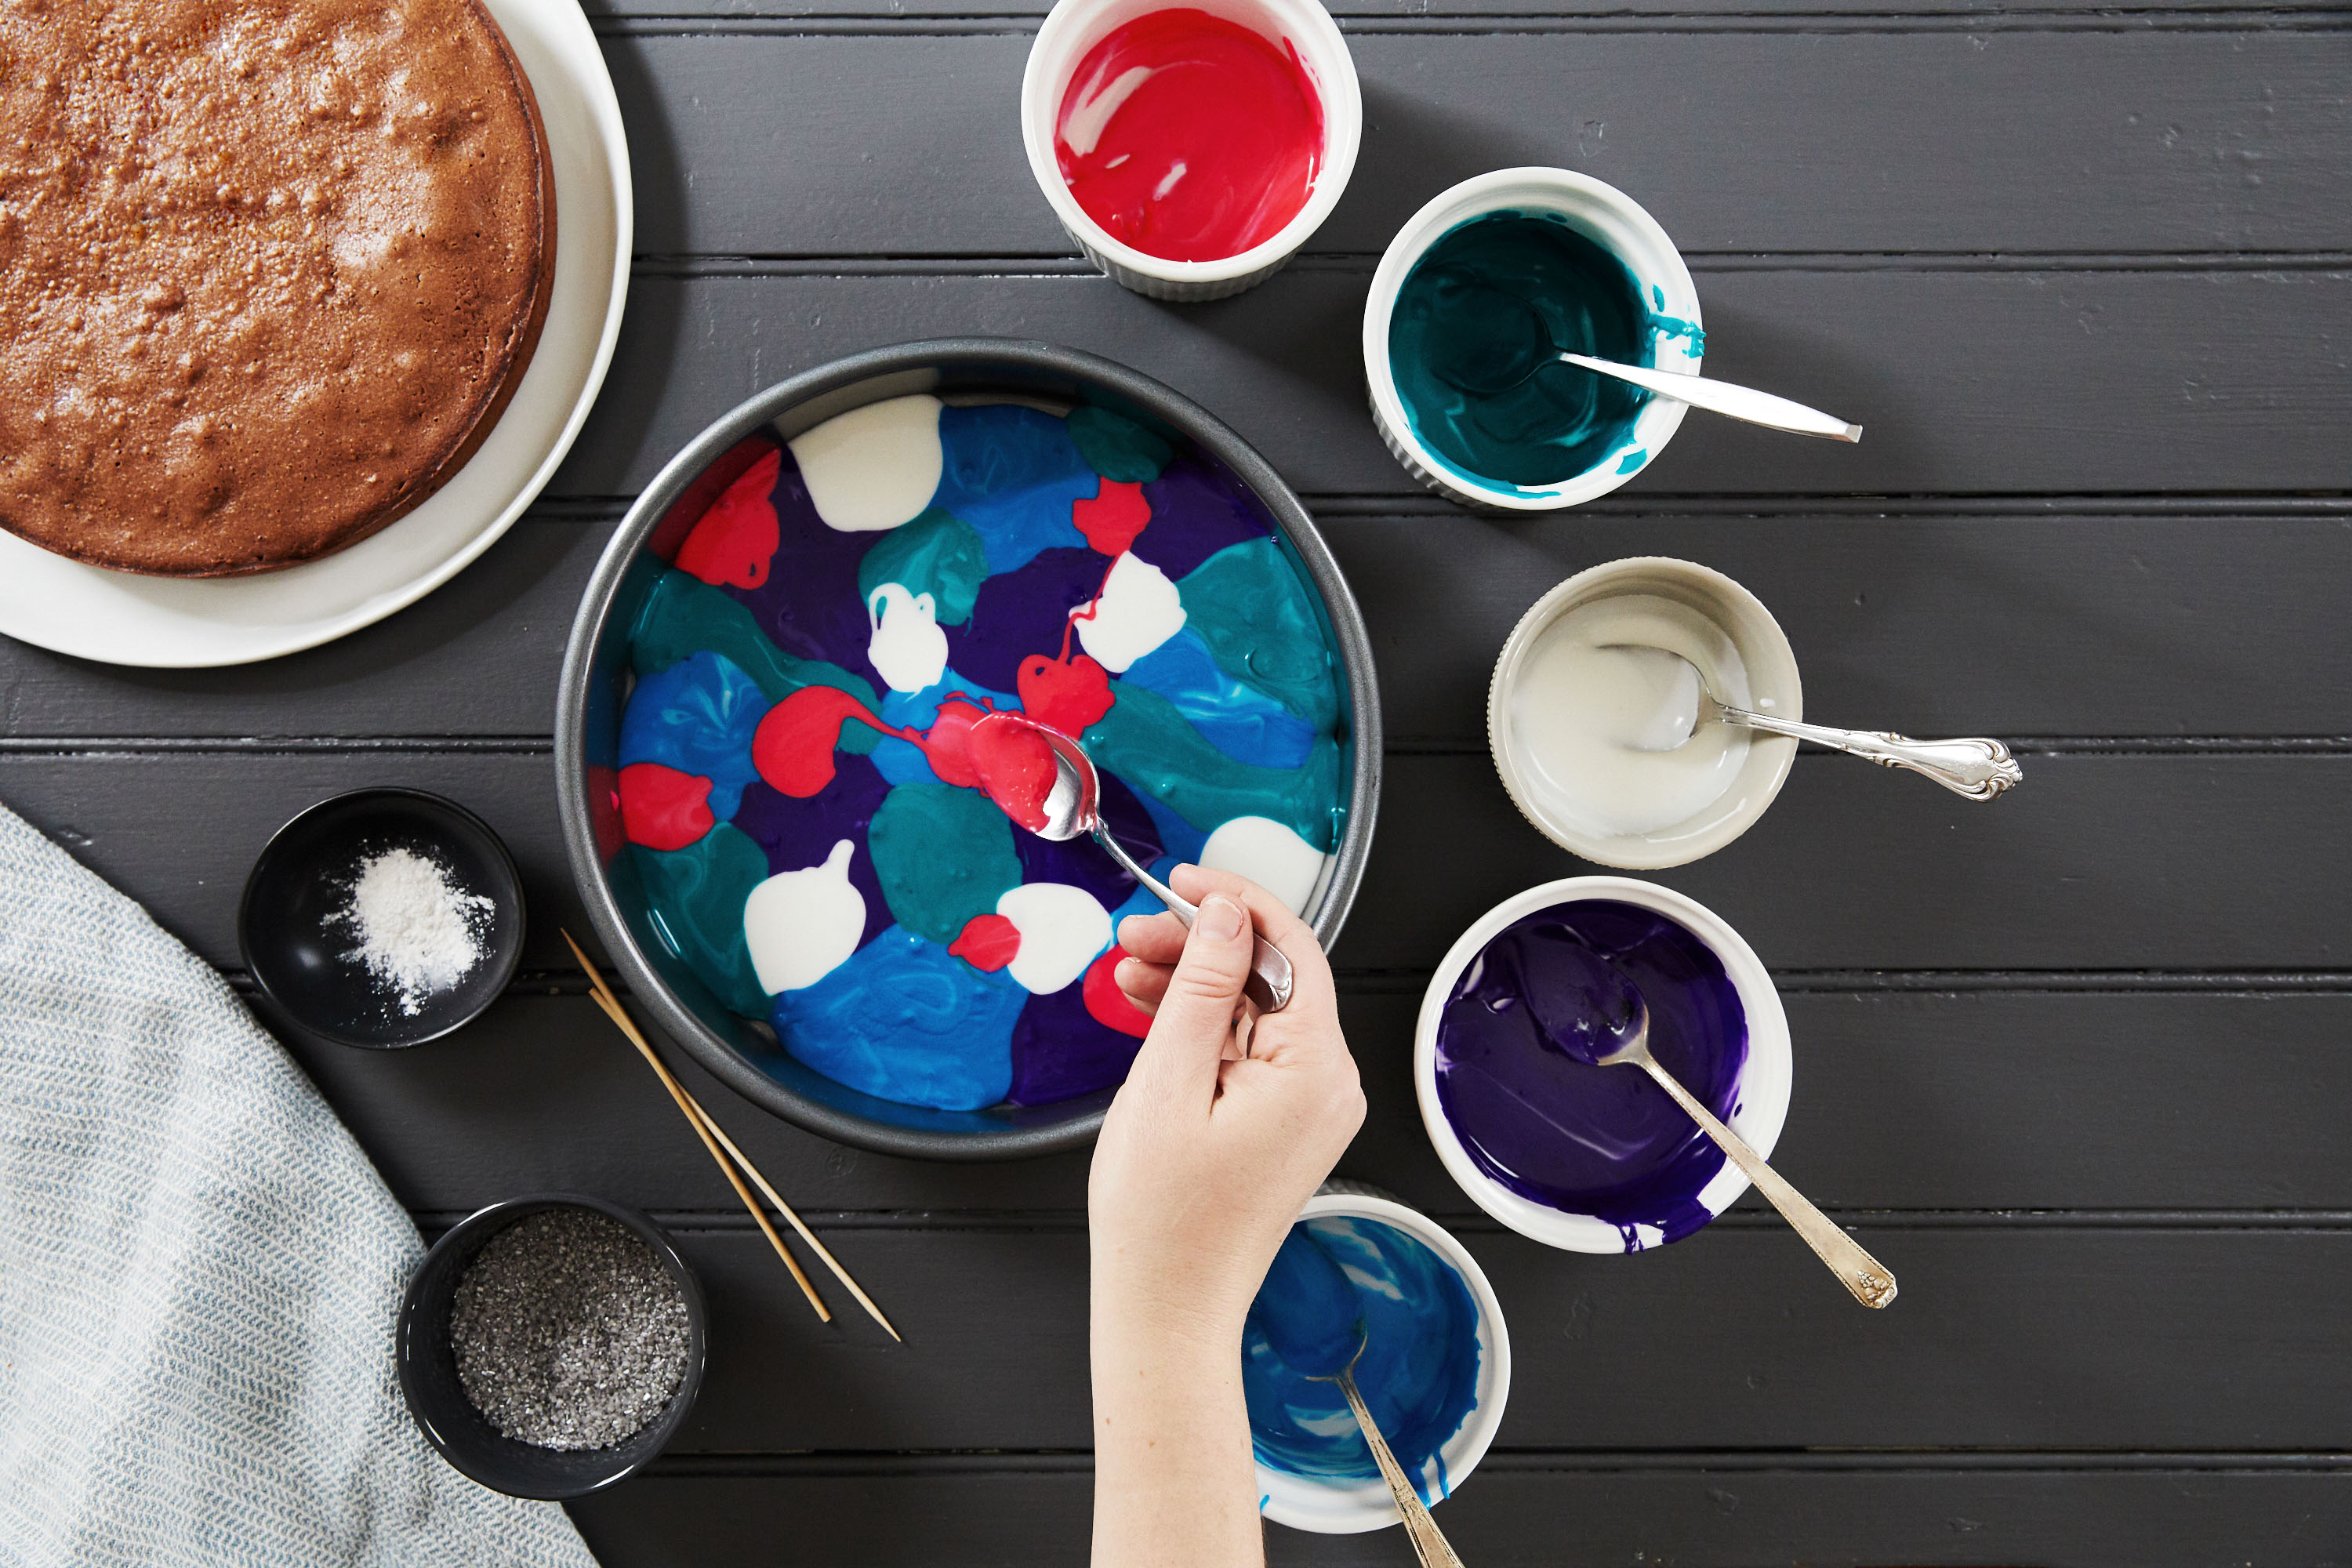 galaxy cake how-to dolloping colored frosting